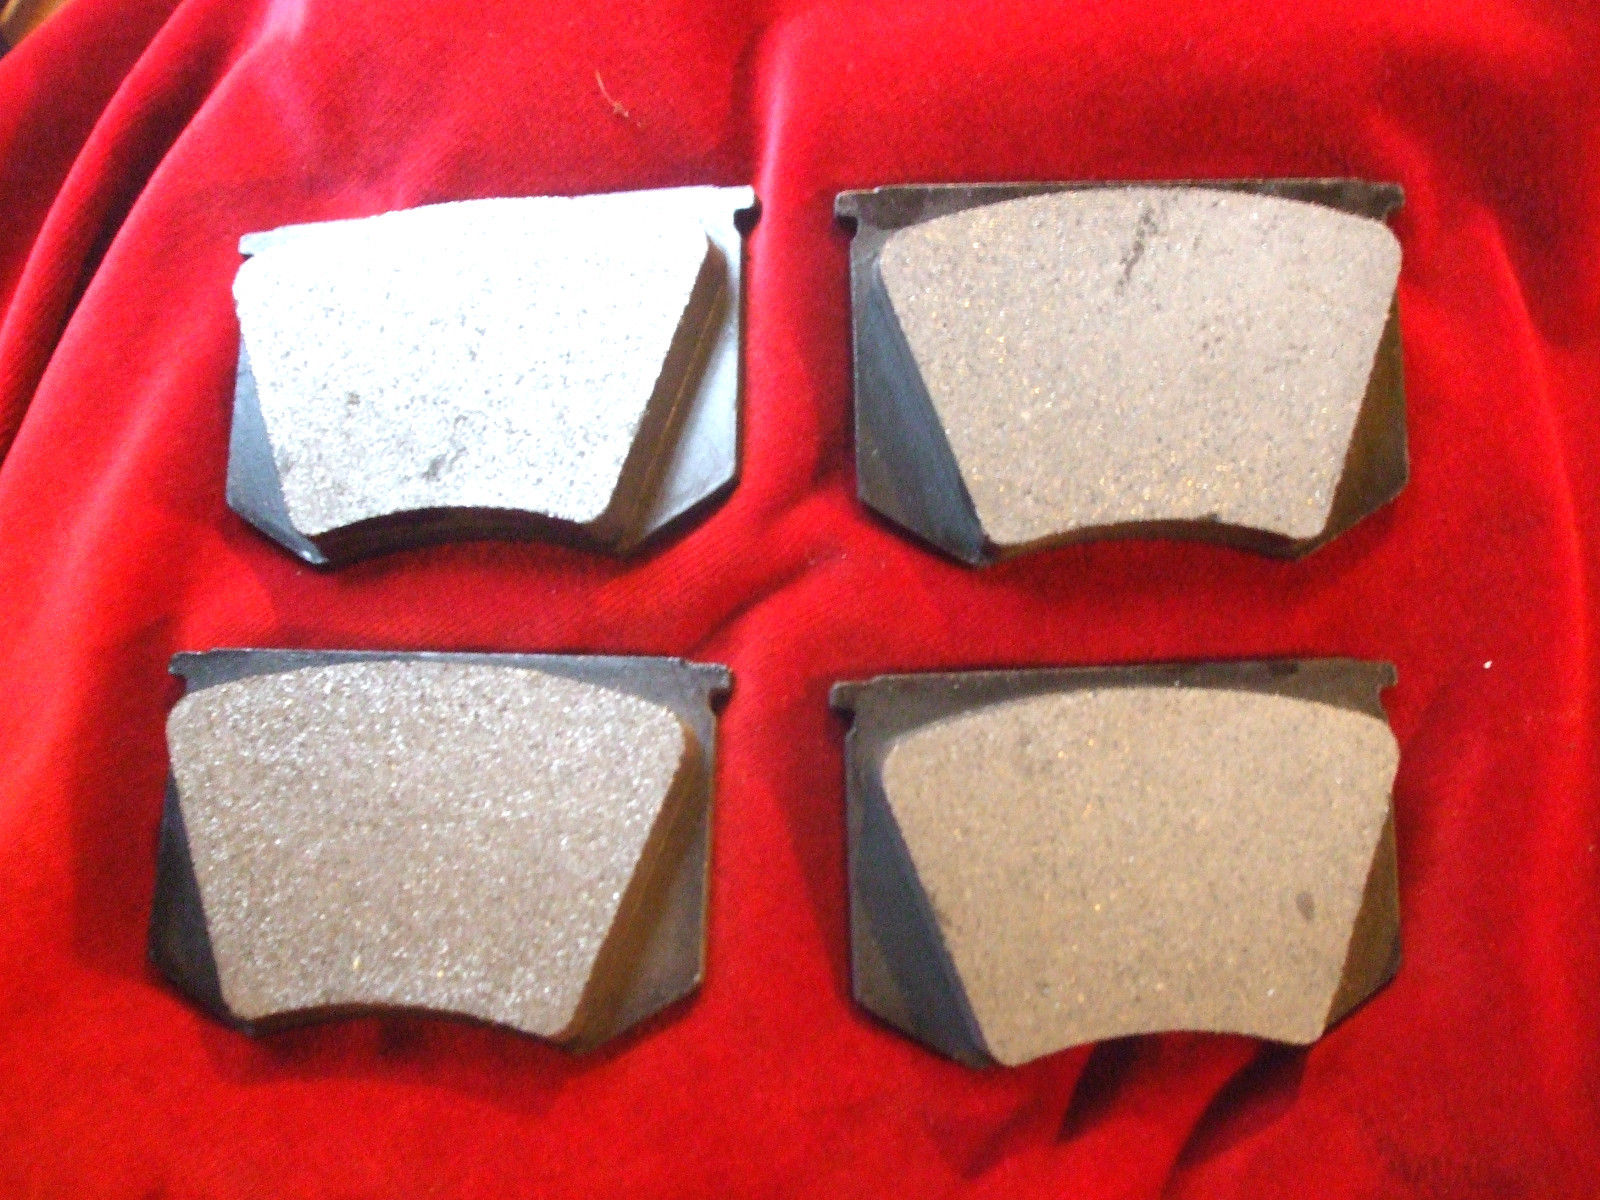 FRONT BRAKE PADS SET (Triumph TR3, TR4) (** 1956- Jan 62 Only **)